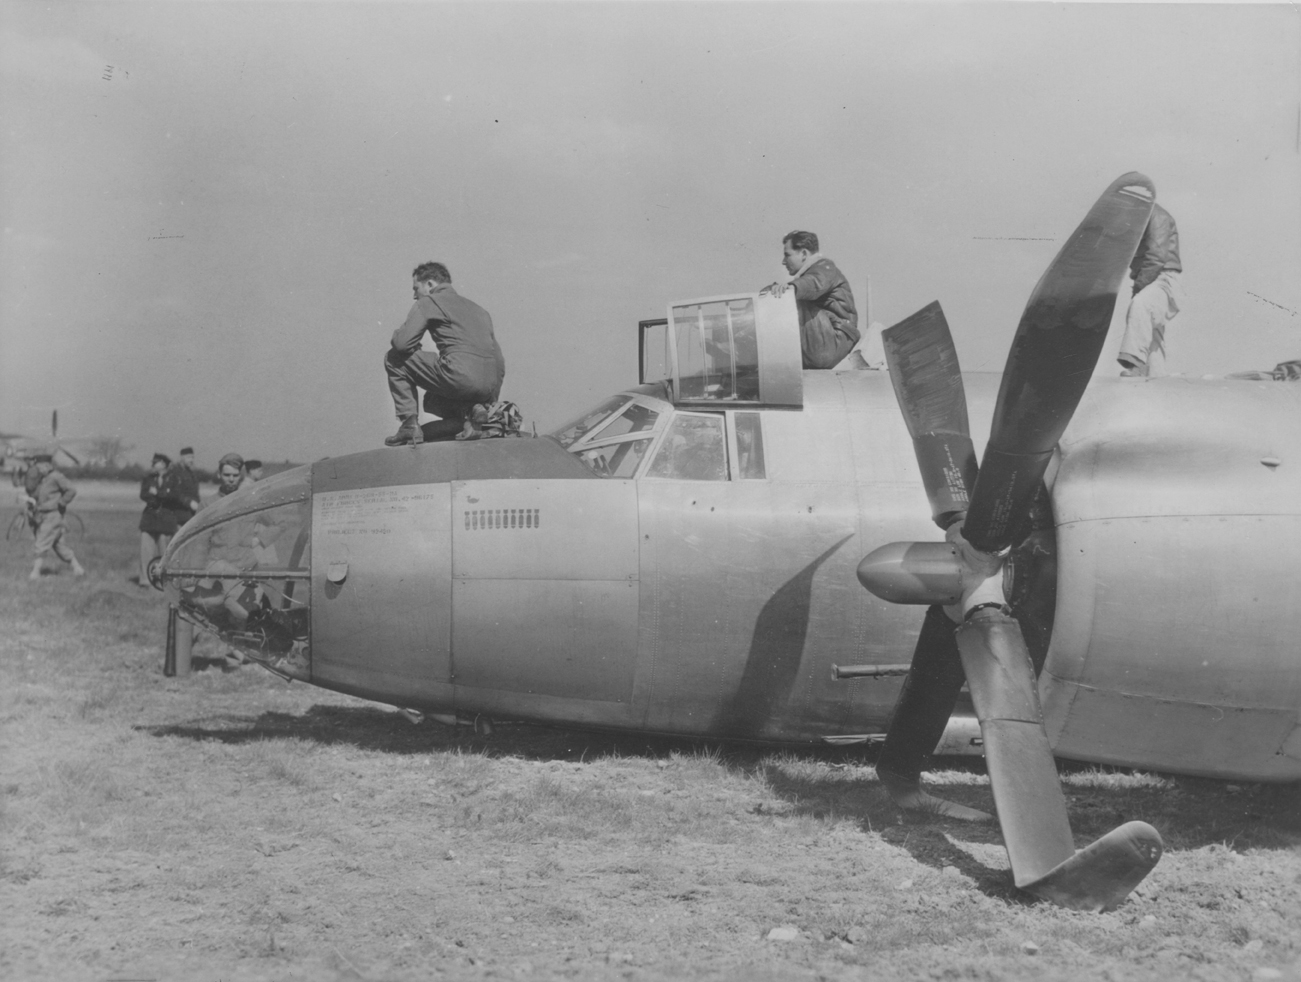 USAAF 42 96175 B 26B Marauder 397BG599BS 6BV Collect on delivery crashed at Grange Hill Coggeshall 11 May 1944 02